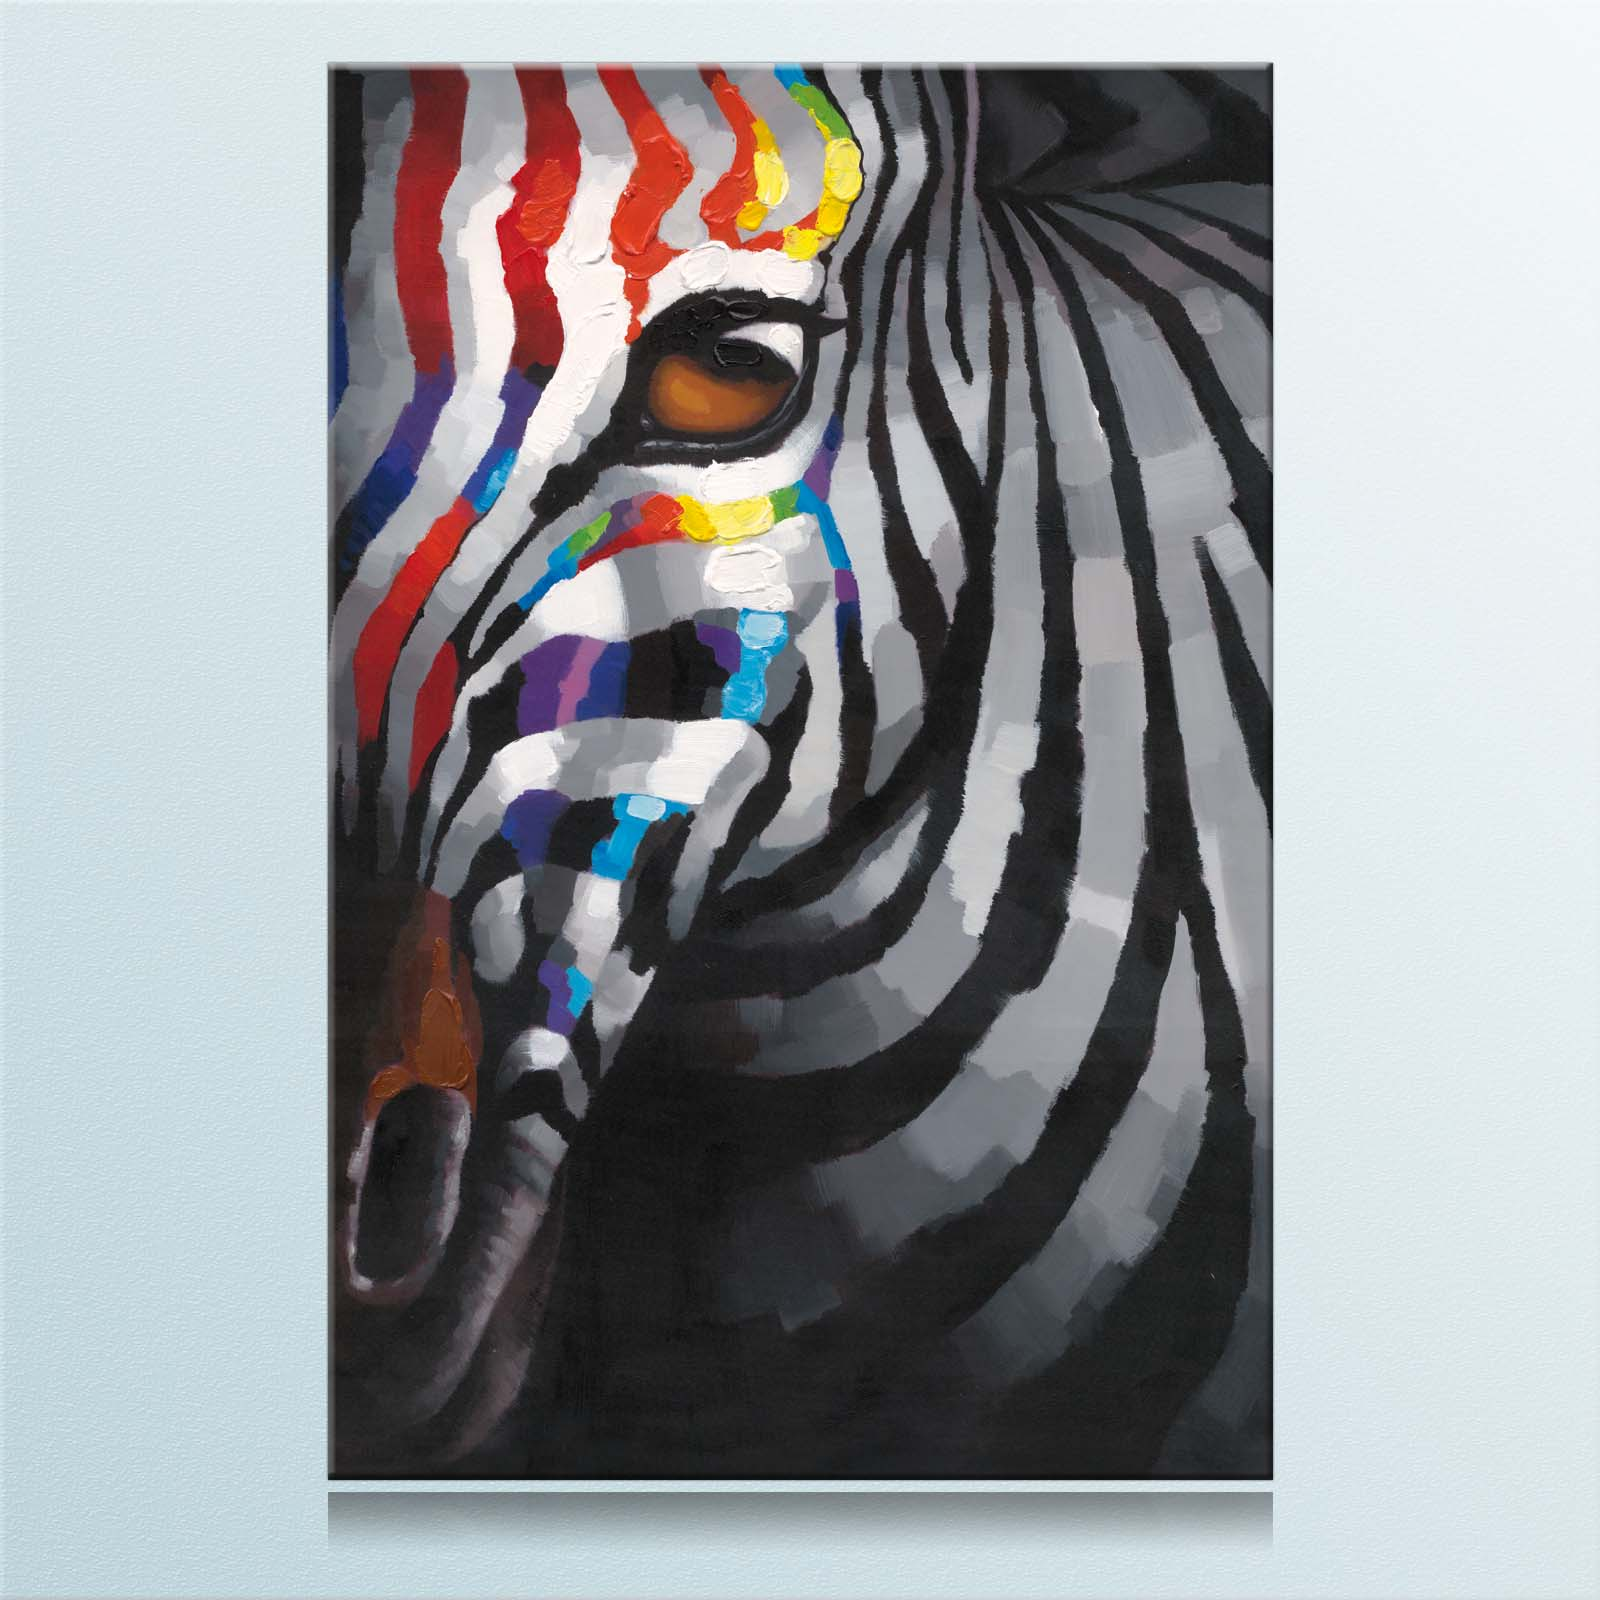 60x90cm zebra auge bunt keilrahmenbild canvas leinwand bild ebay. Black Bedroom Furniture Sets. Home Design Ideas